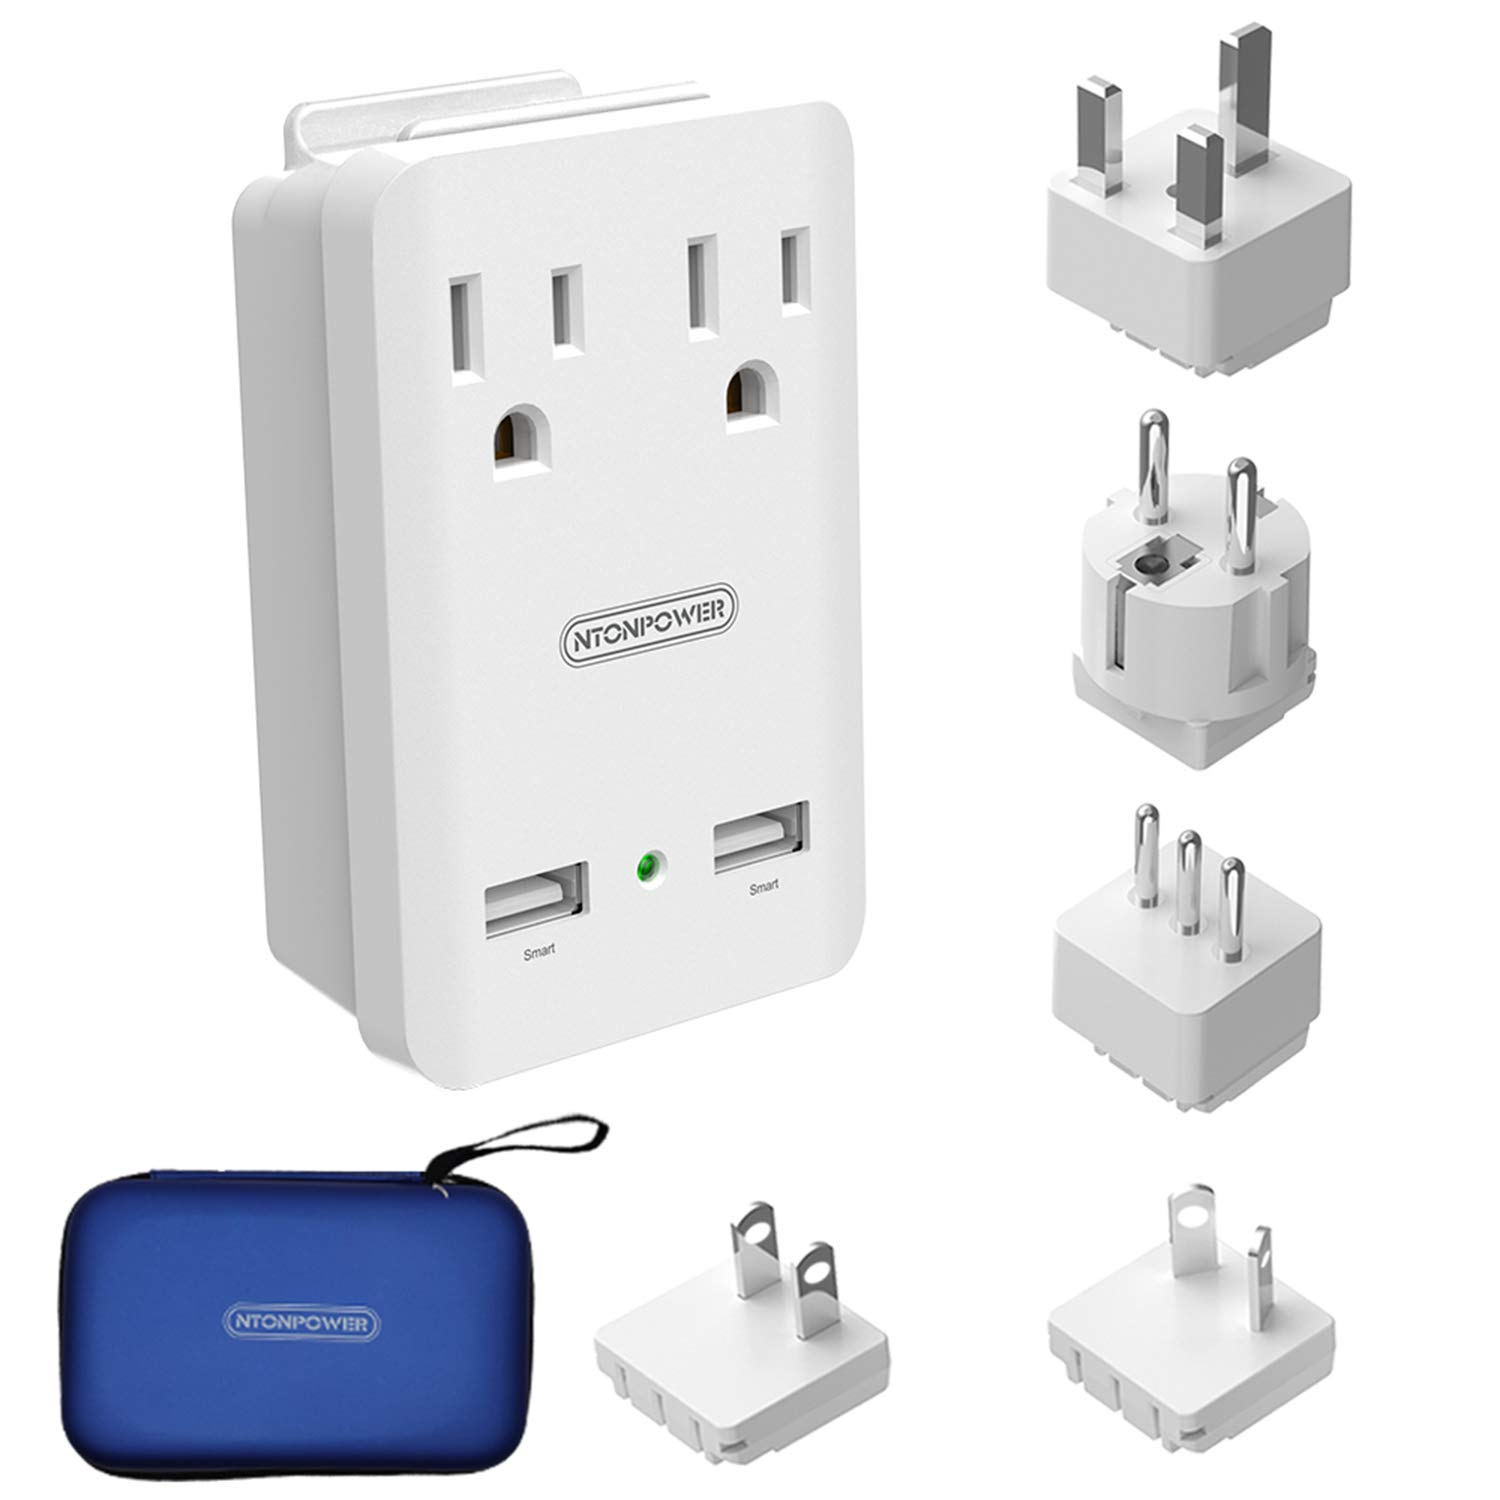 World Travel Adapter Kit - NTONPOWER International Power Adapter, 2 USB Ports 2 Outlets, 2000W Universal Cruise Power Strip with Organizer Case for Europe, Italy, UK, China, Australia, Japan